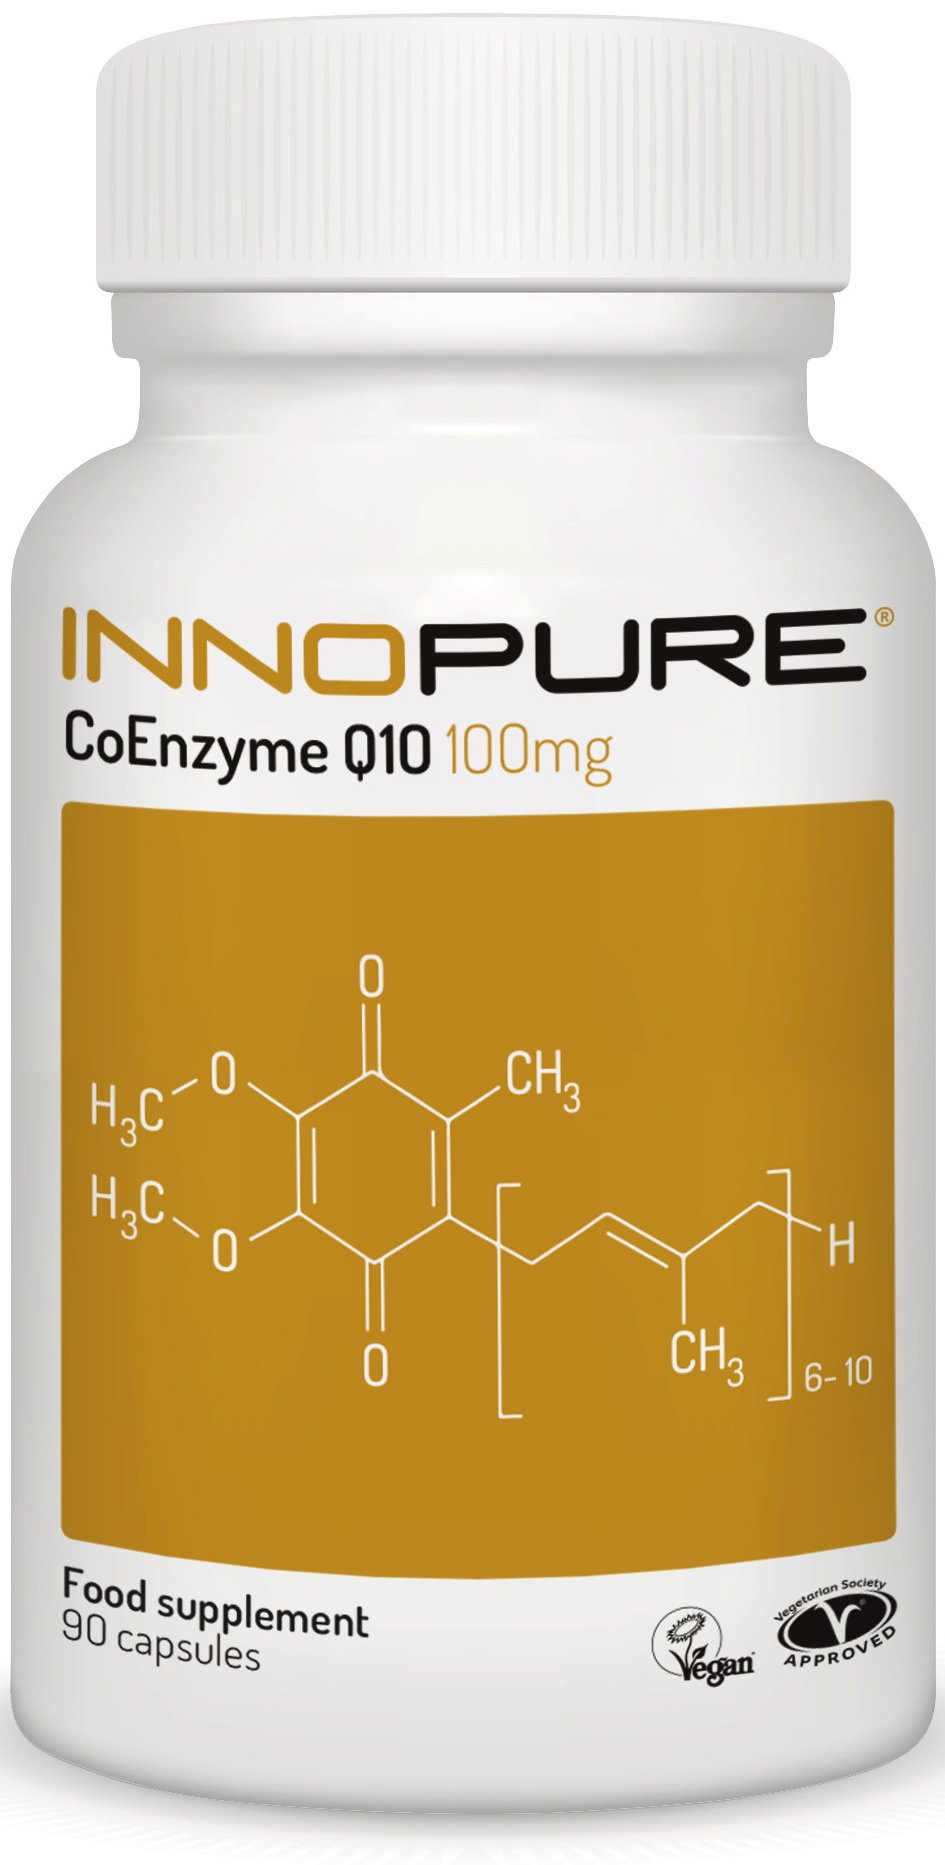 61D5h7lt5WL - CoQ10 Pure Coenzyme Q10 100mg, Naturally Fermented, Vegan Society Approved, 90 Capsules, Made in The UK by Innopure